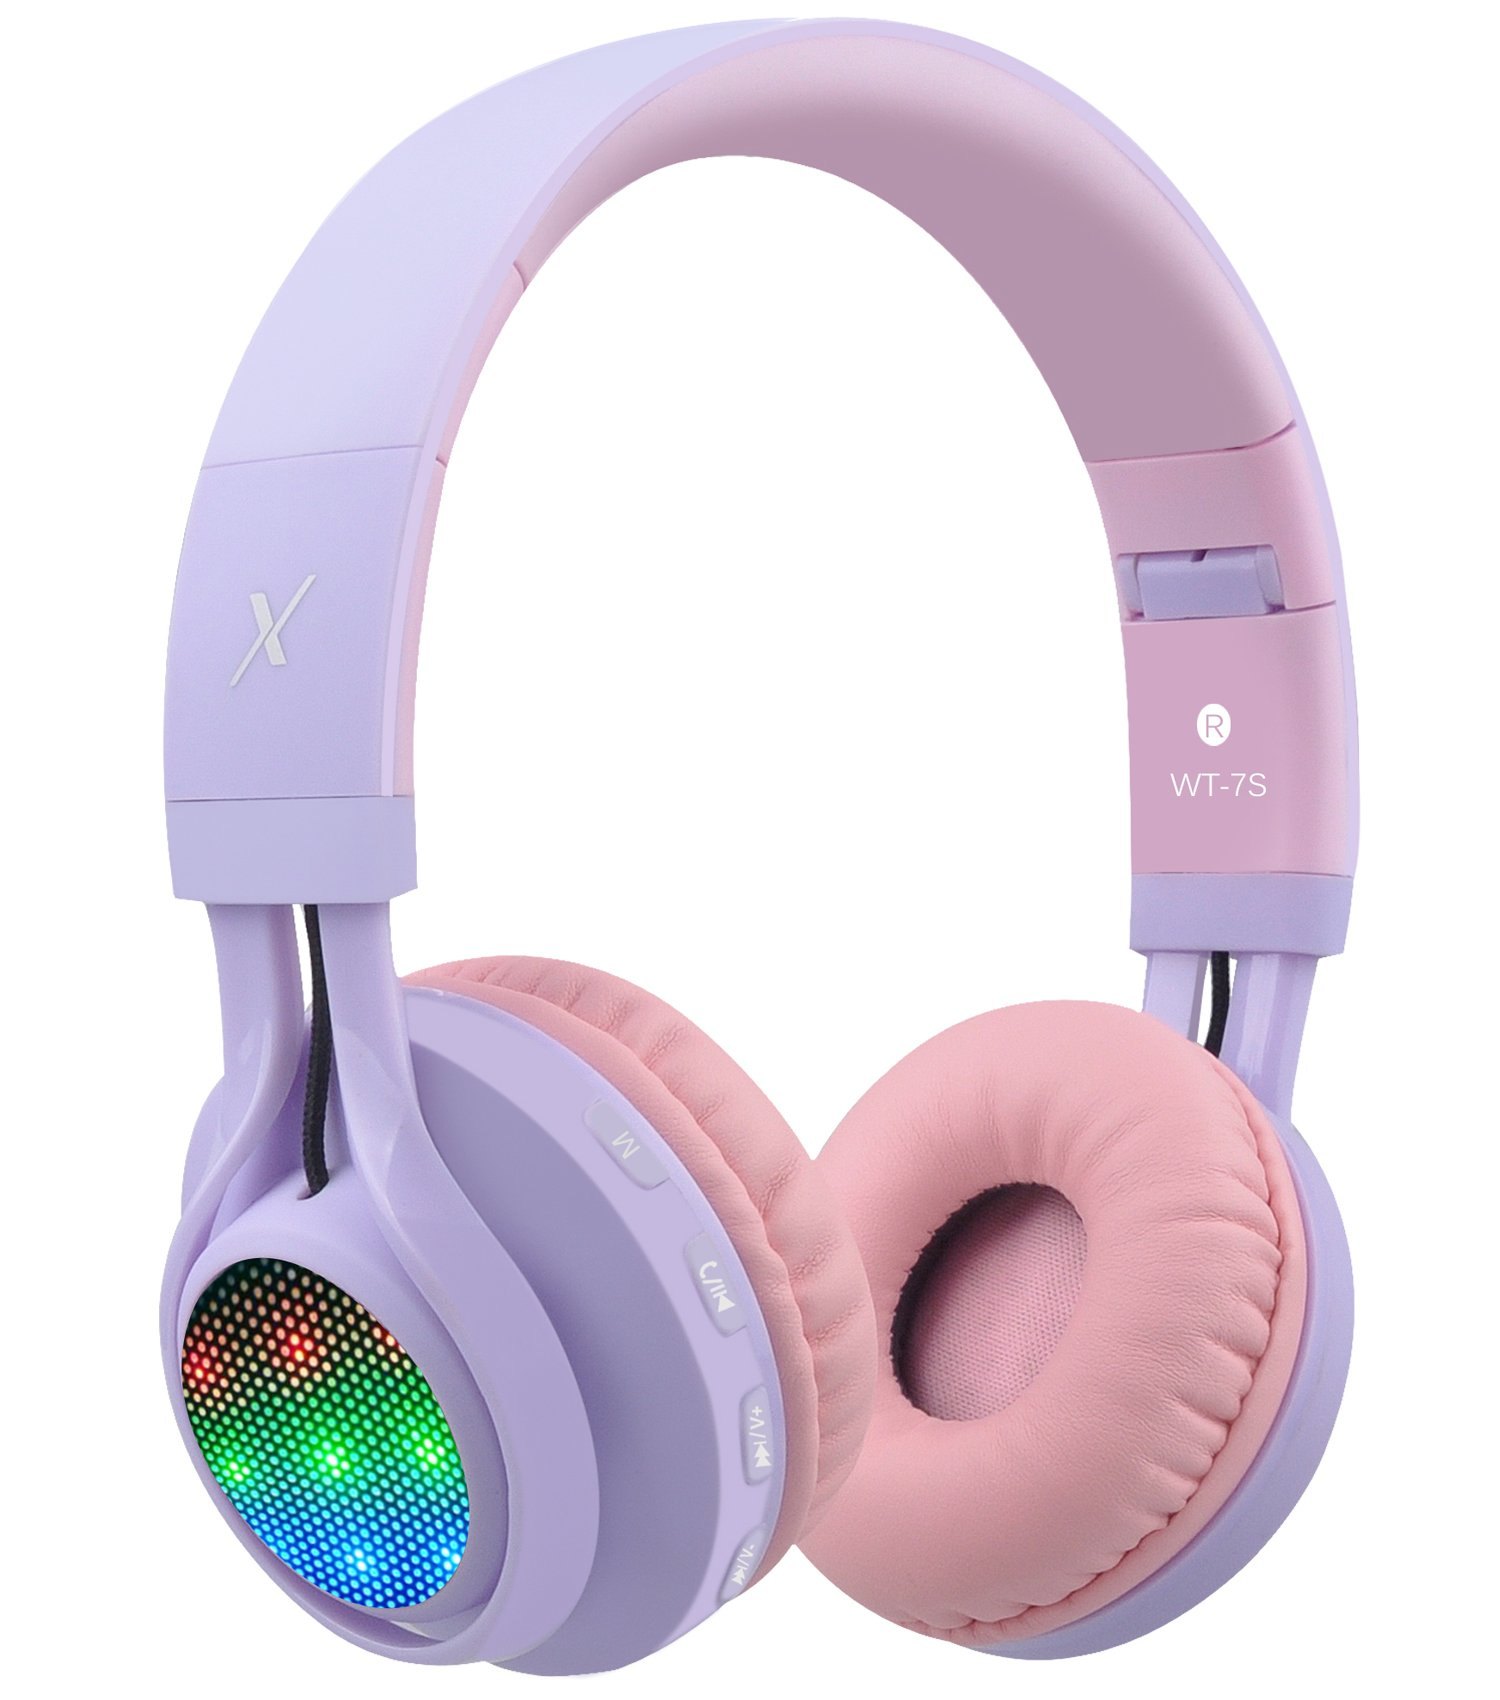 Riwbox WT-7S Bluetooth Headphones Light Up, Foldable Stero Wireless Headset with Microphone and Volume Control for PC/Cell Phones/TV/ iPad (Purple)